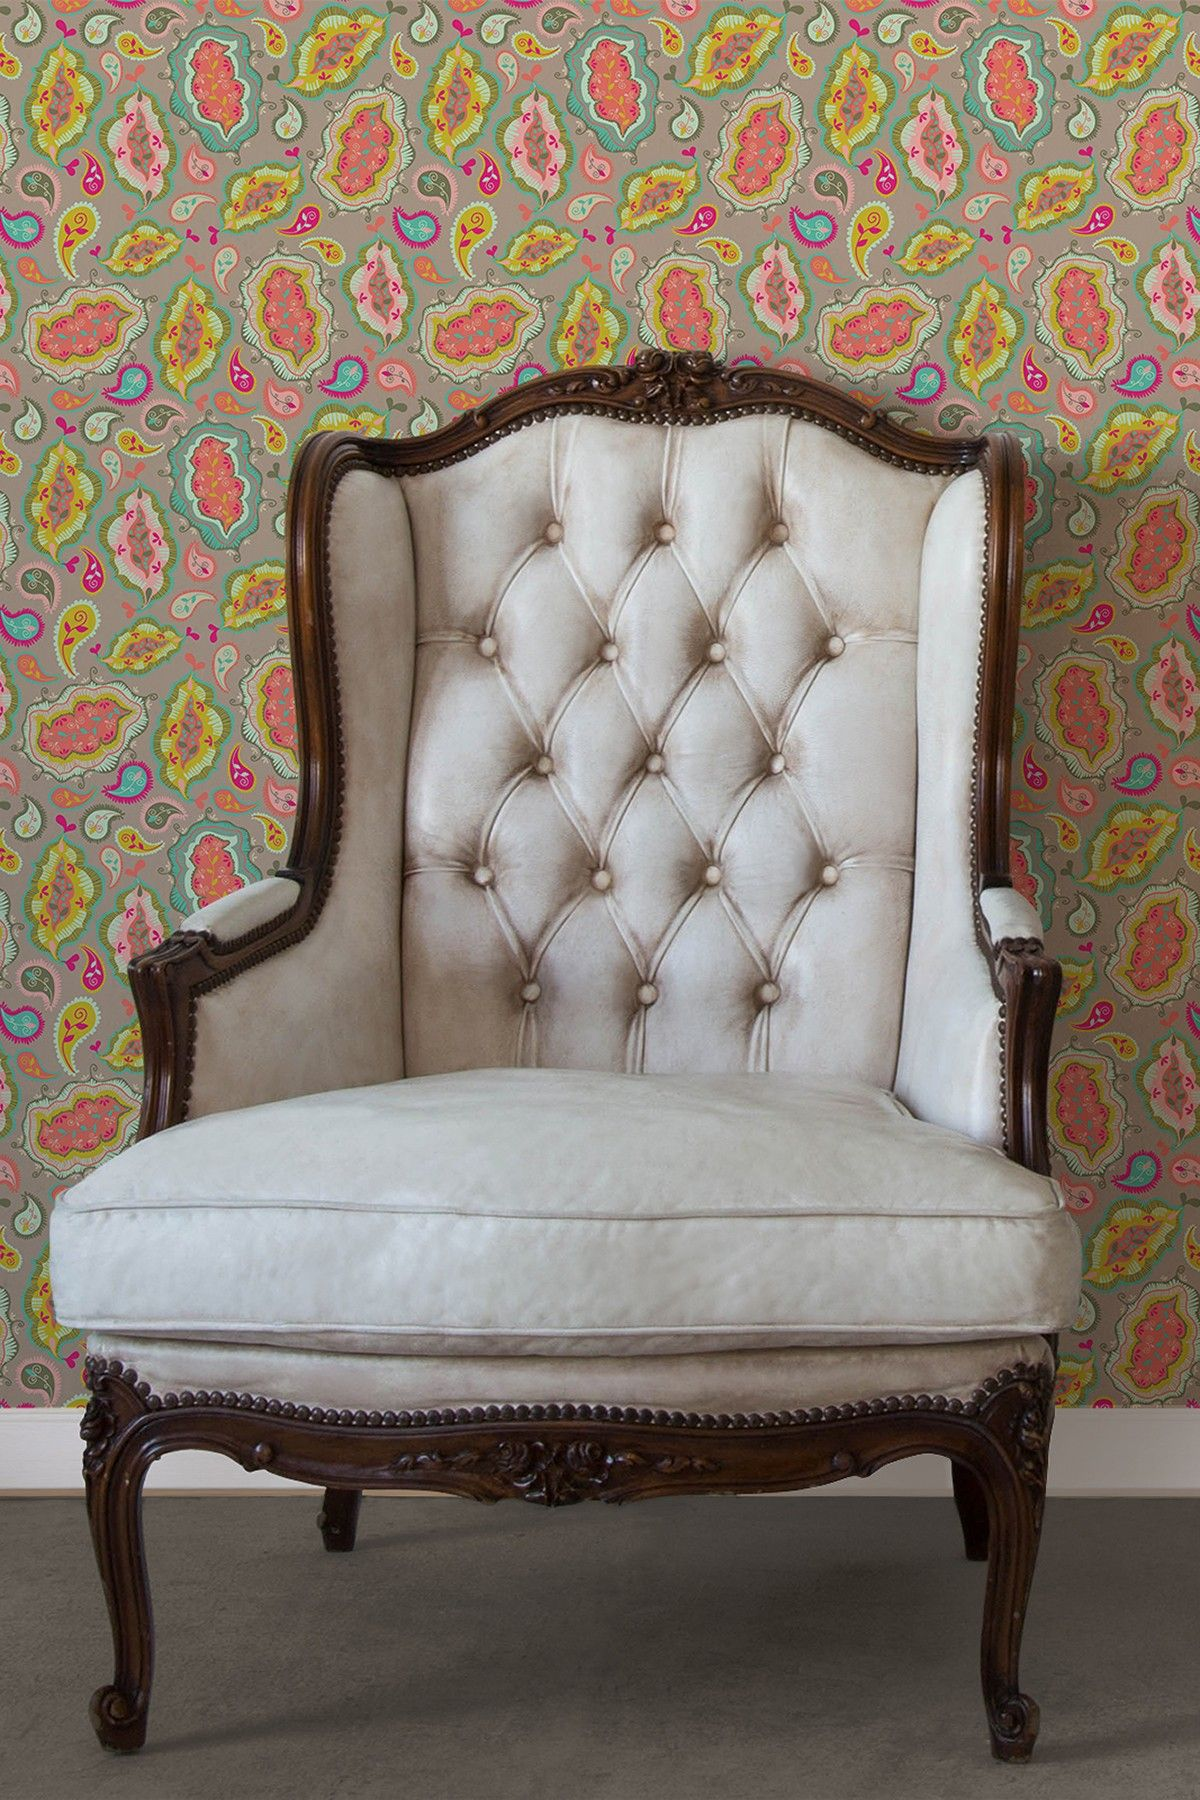 Divya Jessica Swift Removable Wall Decal On HauteLook In The - Wall decals on furniture